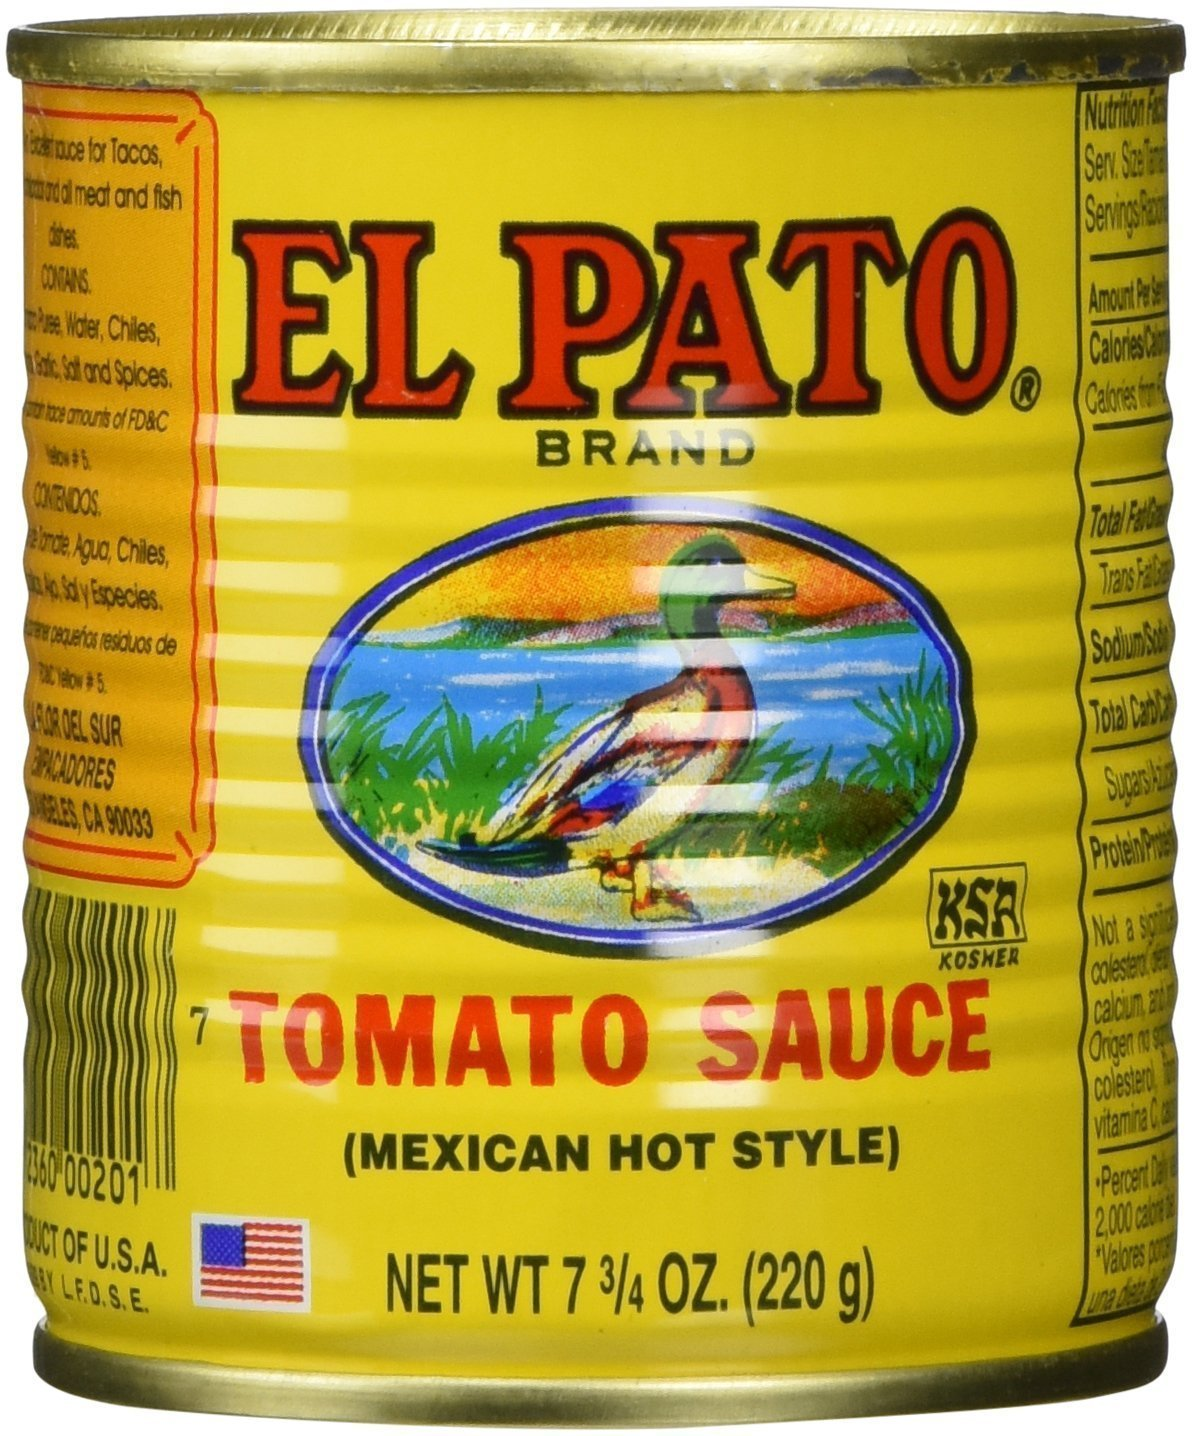 EL PATO Mexican Hot Style Tomato Sauce 7.75 Oz - (24-Pack) by El Pato